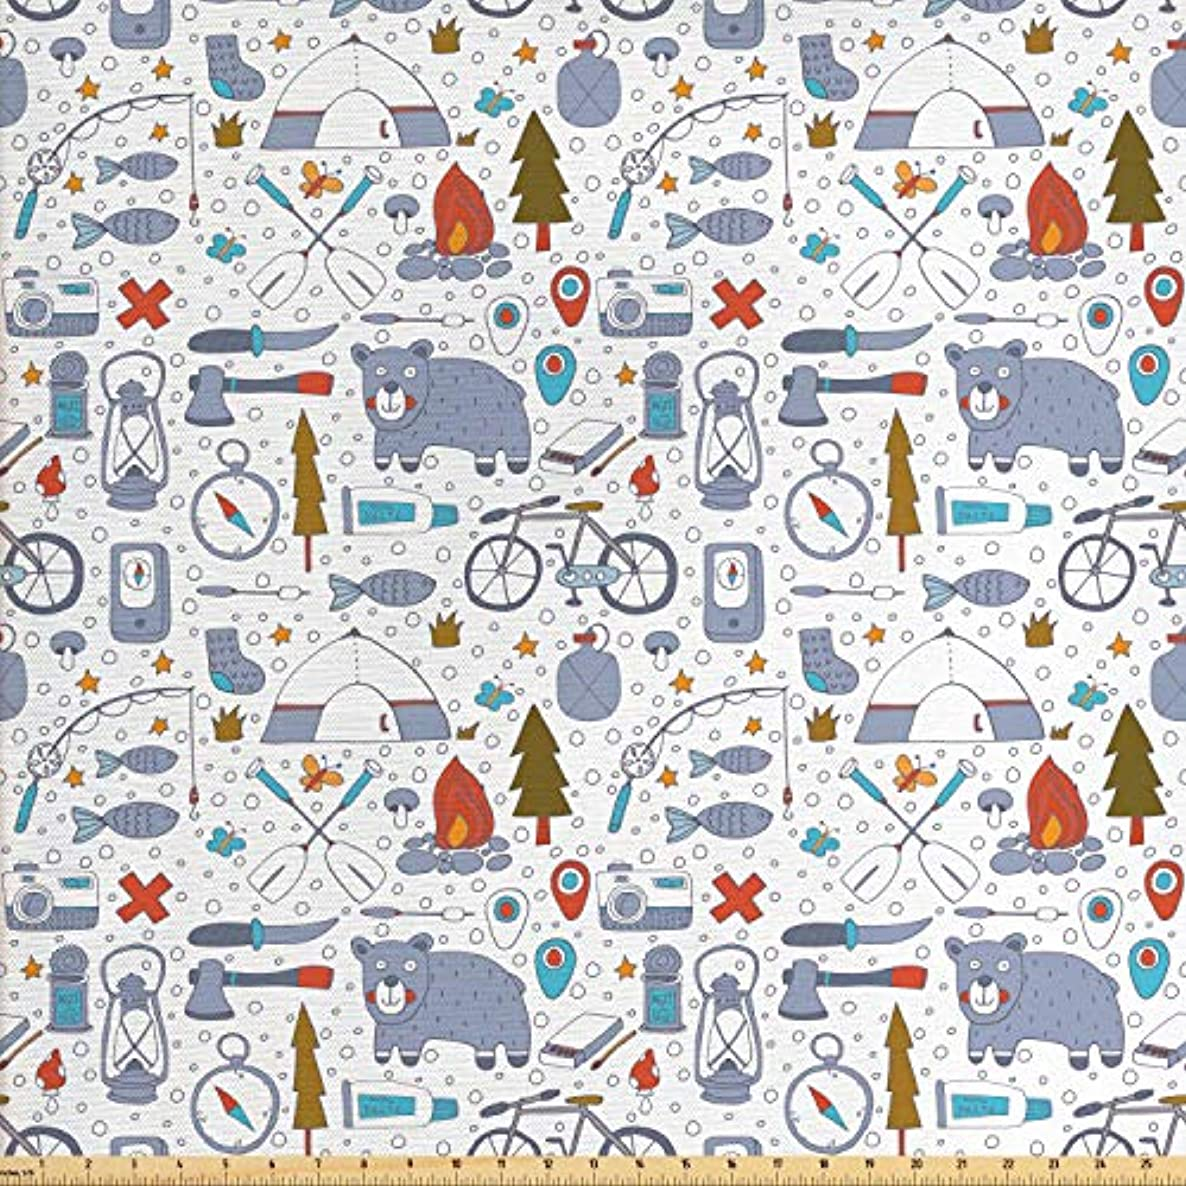 Lunarable Camping Fabric by The Yard, Cartoon Bear Tent and Compass Outdoor Hobby Theme Hiking Doodle, Decorative Fabric for Upholstery and Home Accents, 1 Yard, Bluegrey Vermilion and Blue